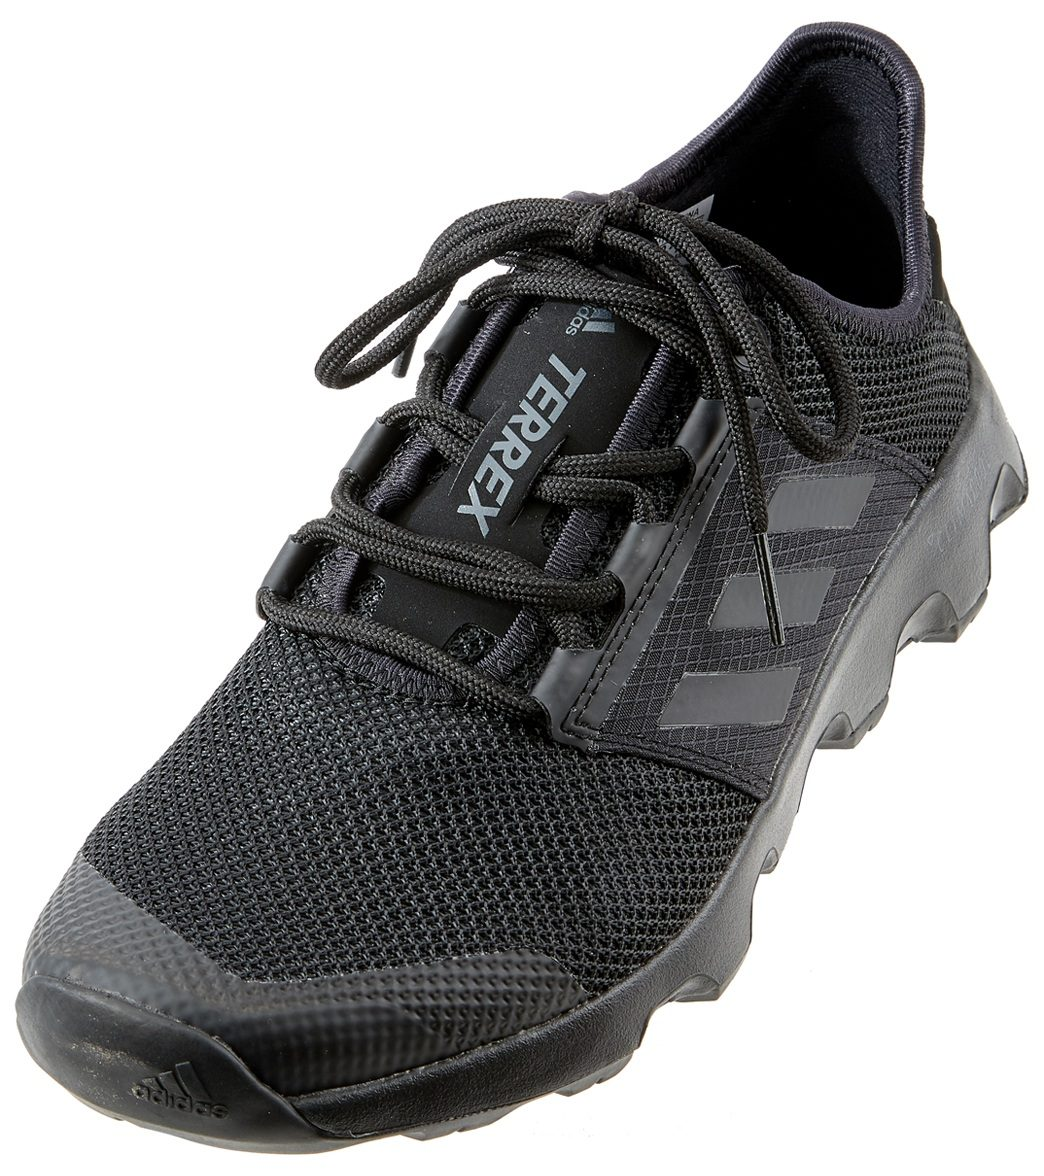 pretty nice 8ac68 03777 Adidas Mens Climacool Voyager Water Shoes at SwimOutlet.com - Free Shipping